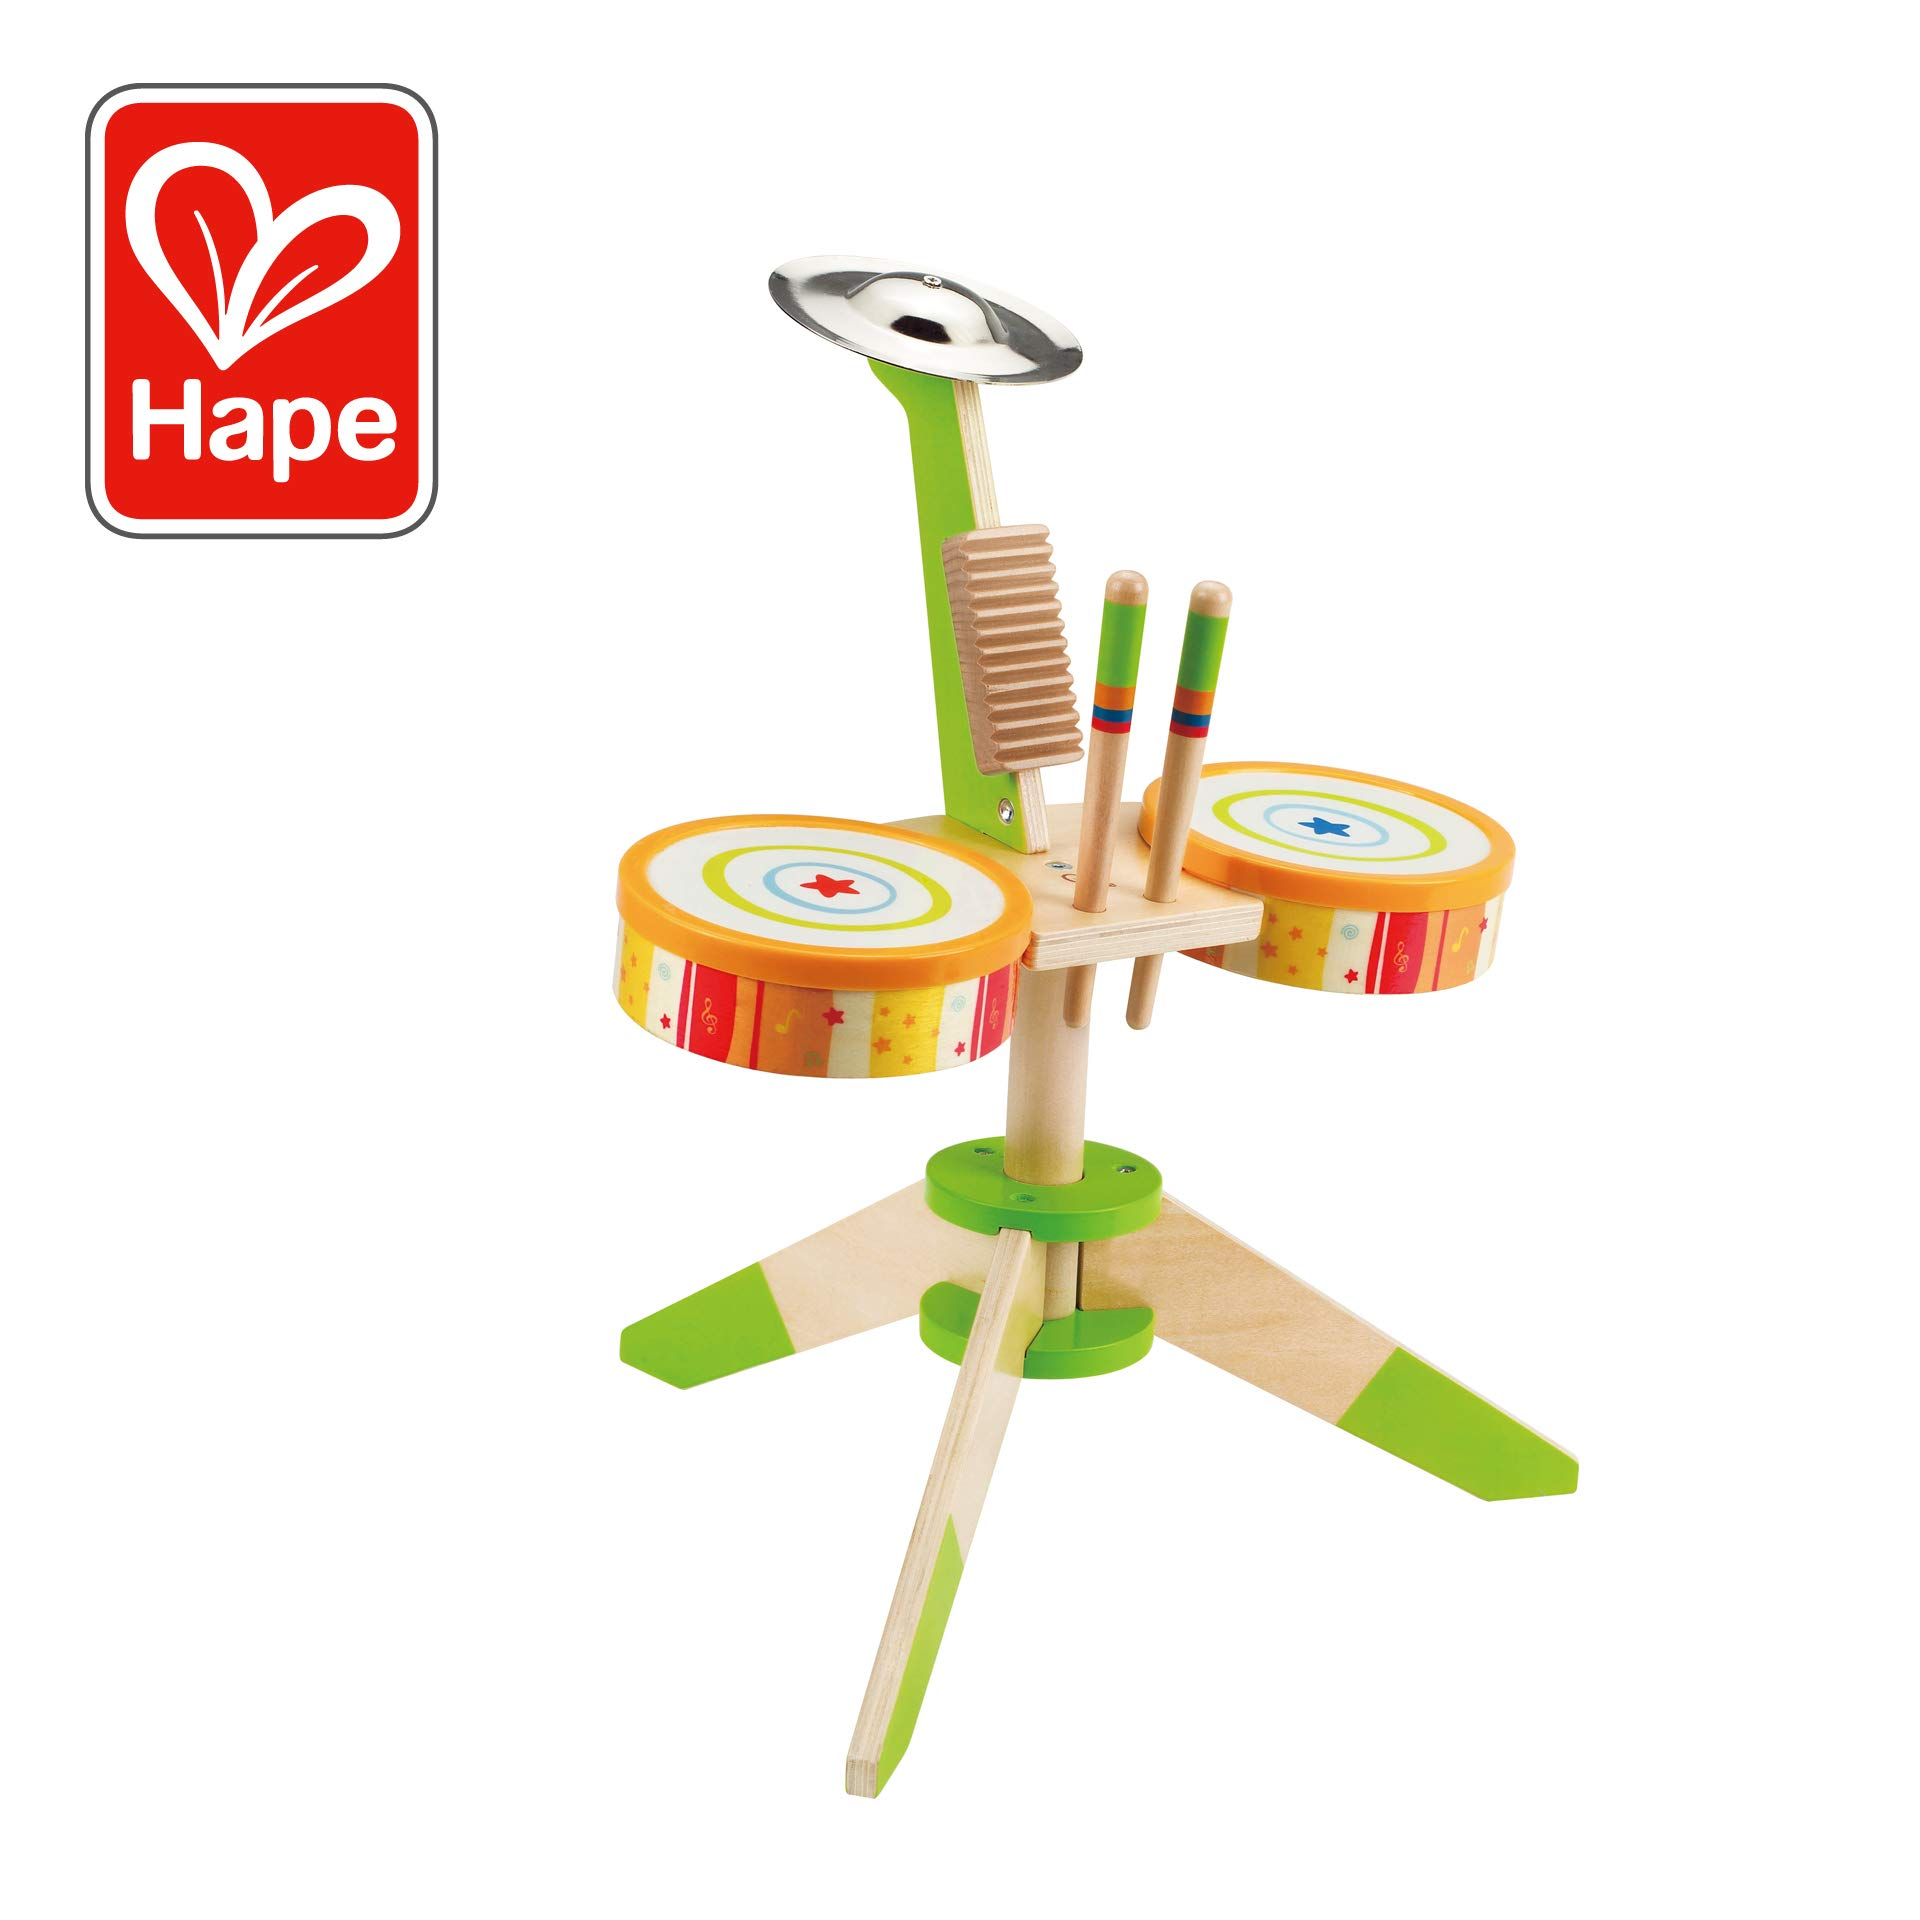 Award Winning Hape Rock and Rhythm Kid's Musical Instruments Wooden Drum Set by Hape